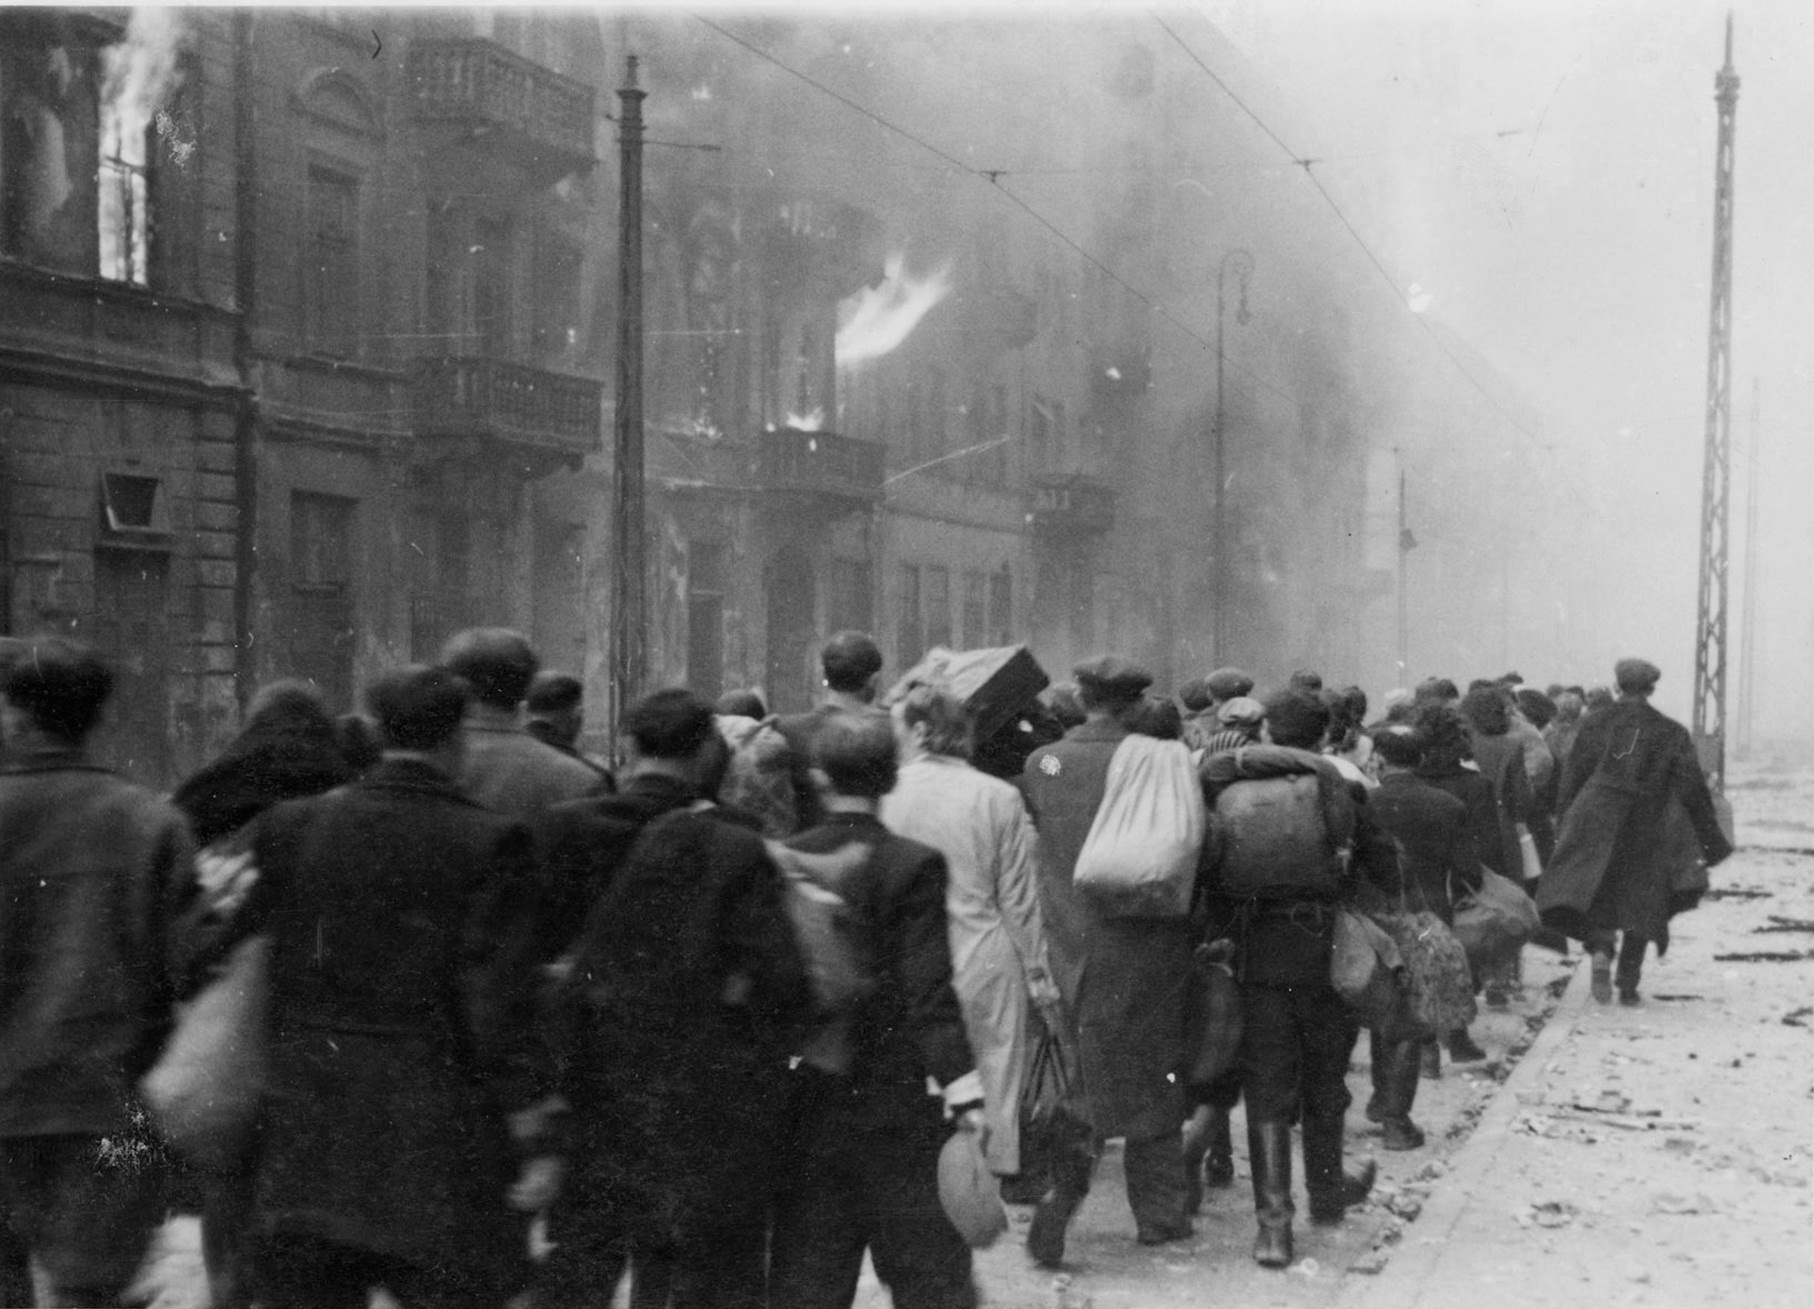 Stroop Report - Warsaw Ghetto Uprising - 26537